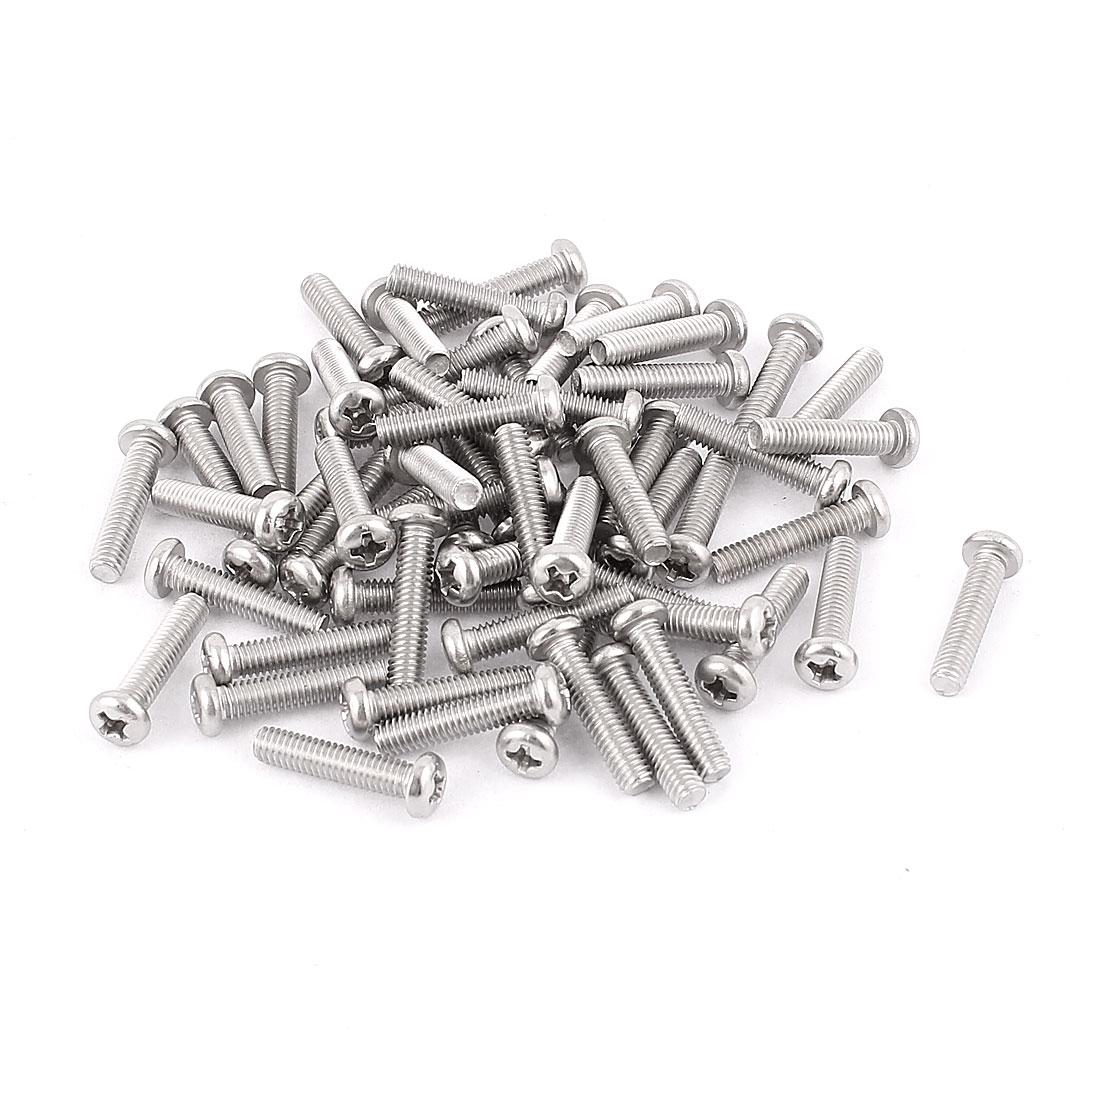 M4 x 18mm 304 Stainless Steel Crosshead Phillips Round Head Screws Bolts 60pcs